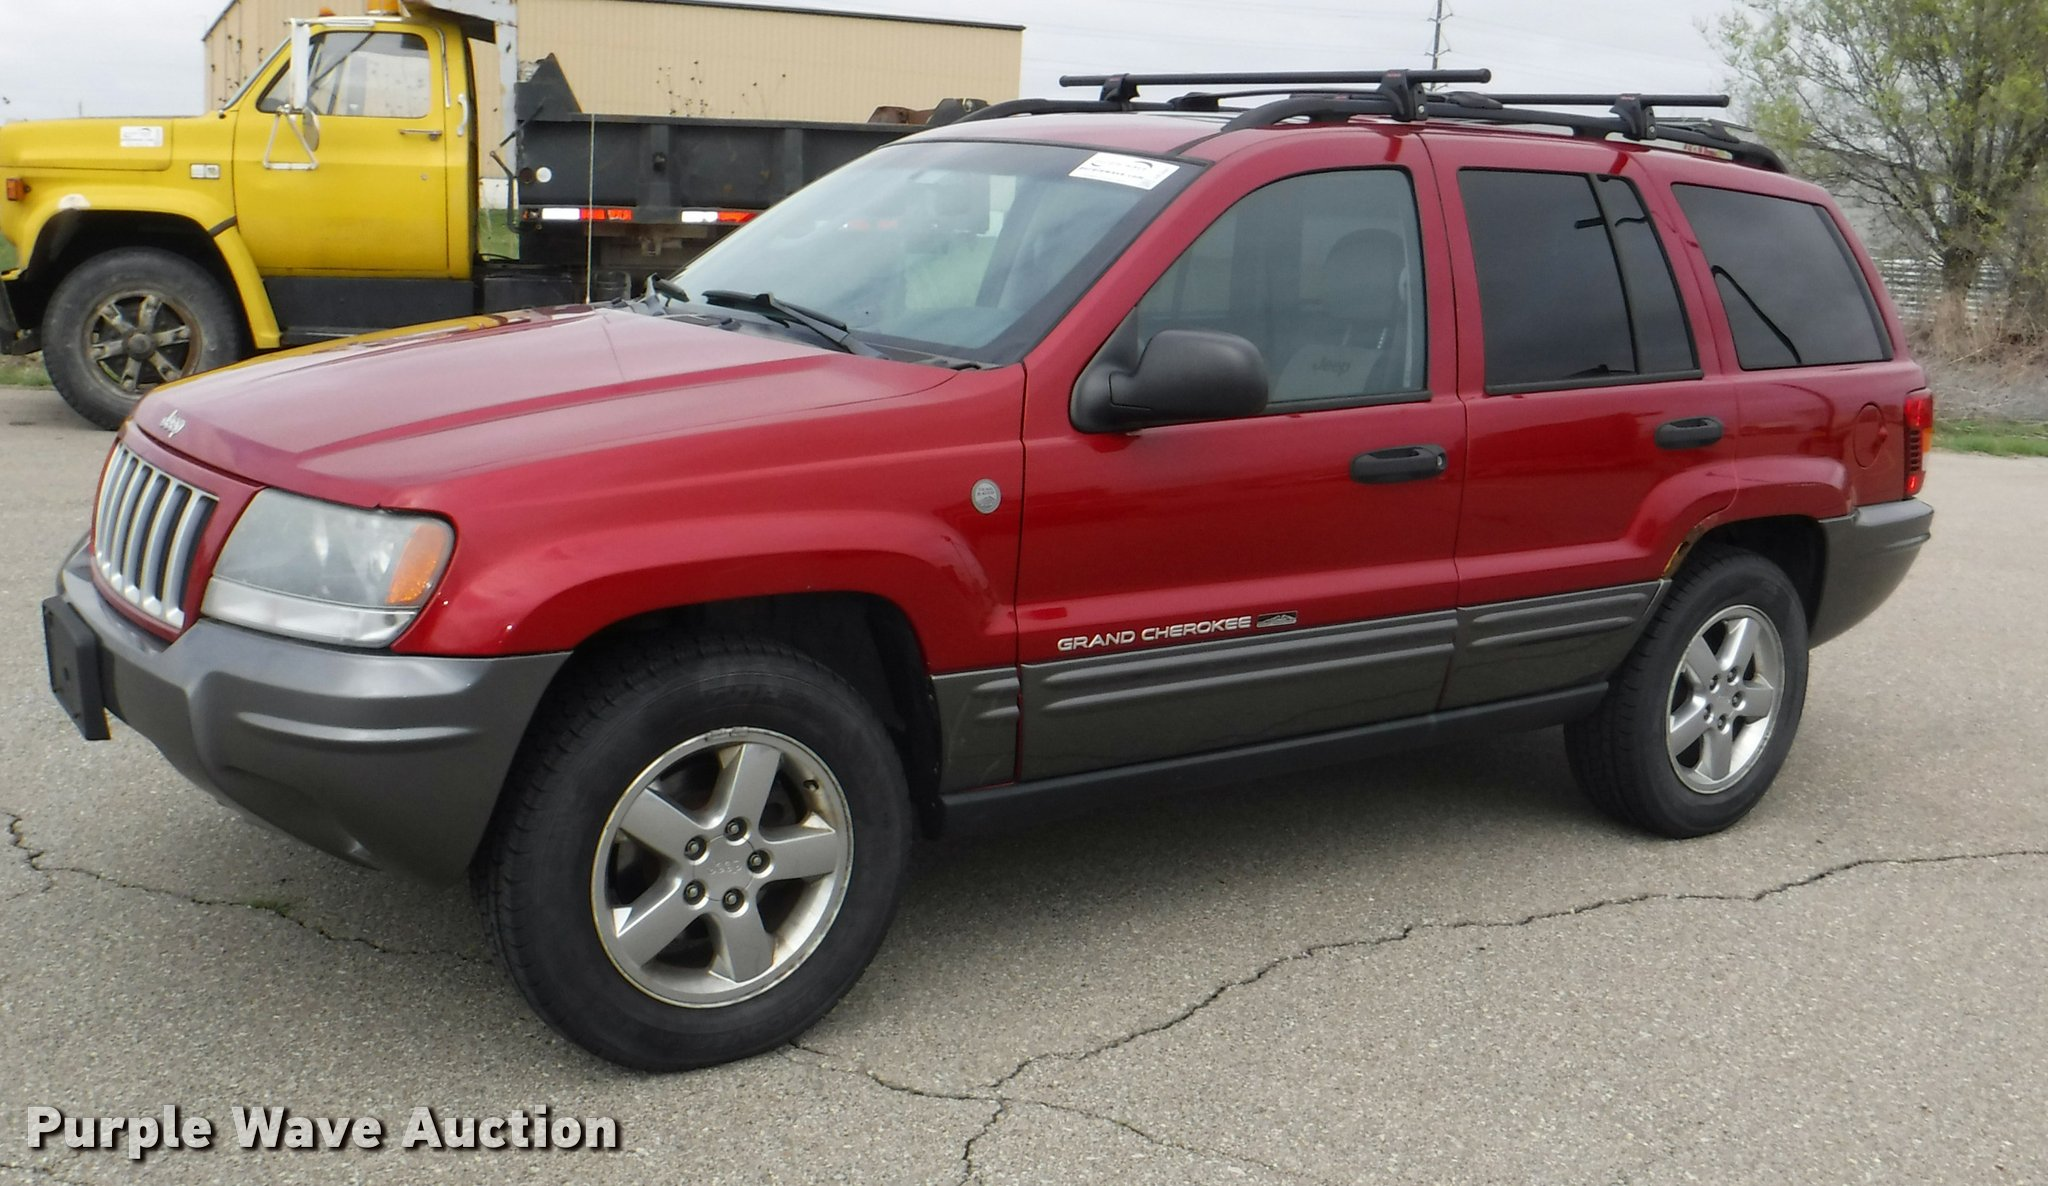 Full Size In New Window; DB3881 Image For Item DB3881 2004 Jeep Grand  Cherokee Laredo Rocky Mountain Edition SUV